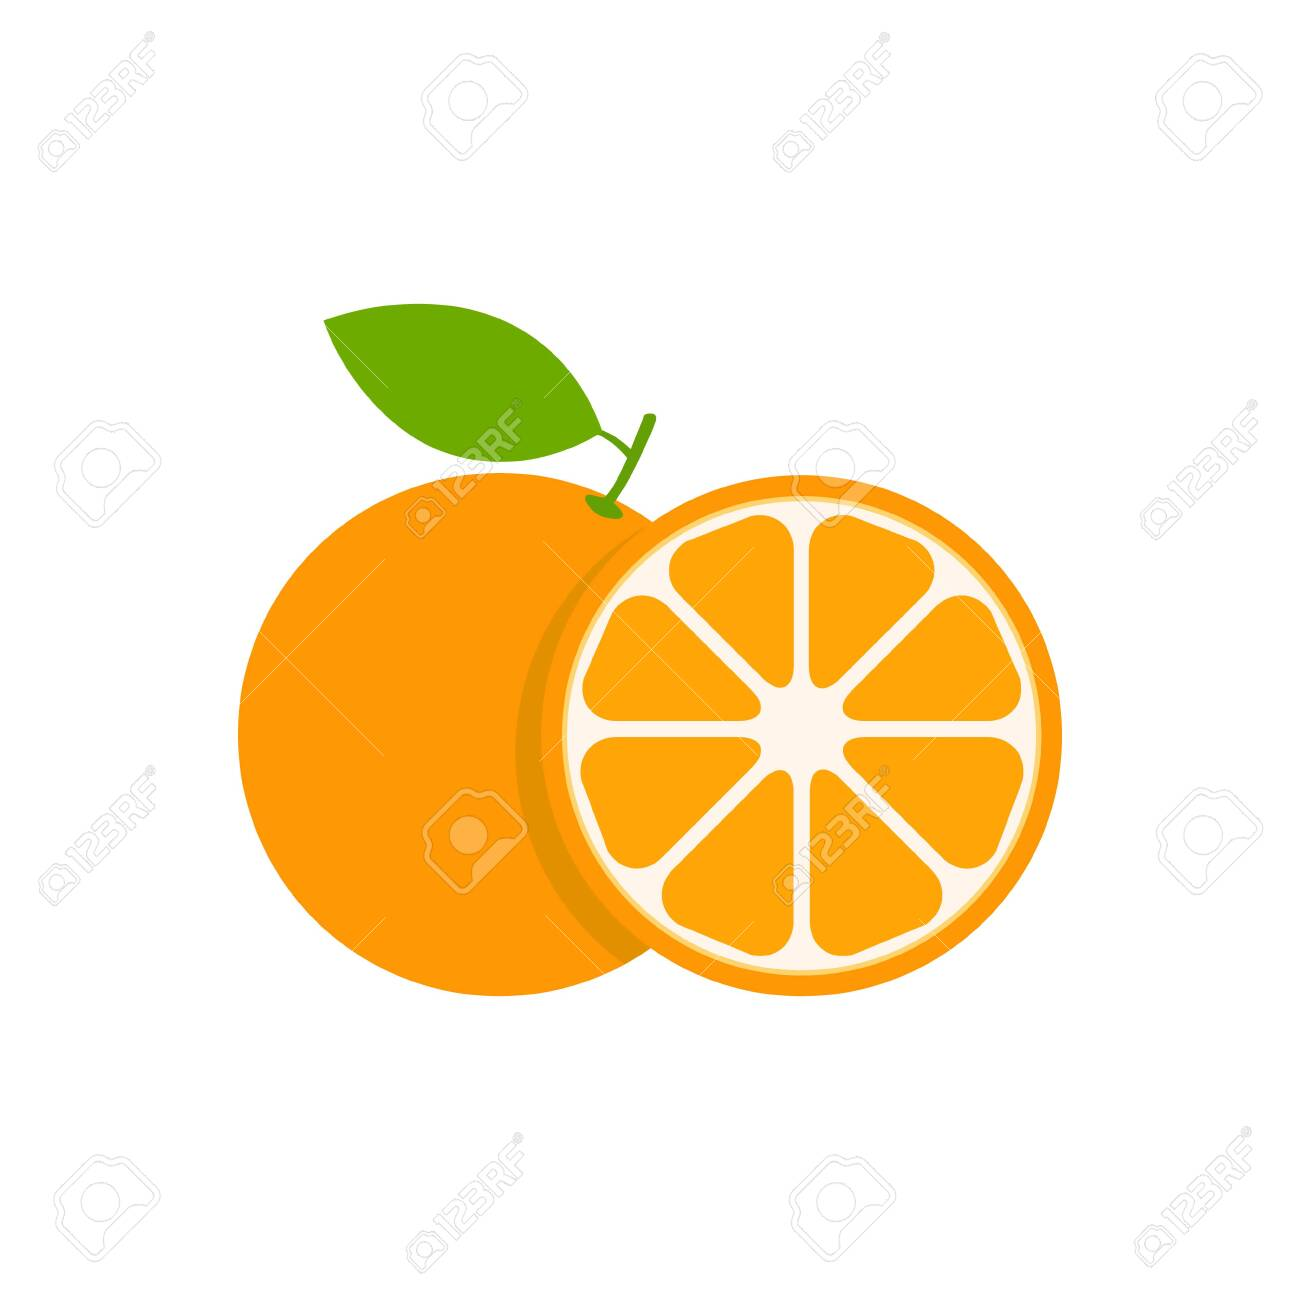 Orange set vector icon illustration isolated on white. Fruit citrus with pieces or slices. - 146576620